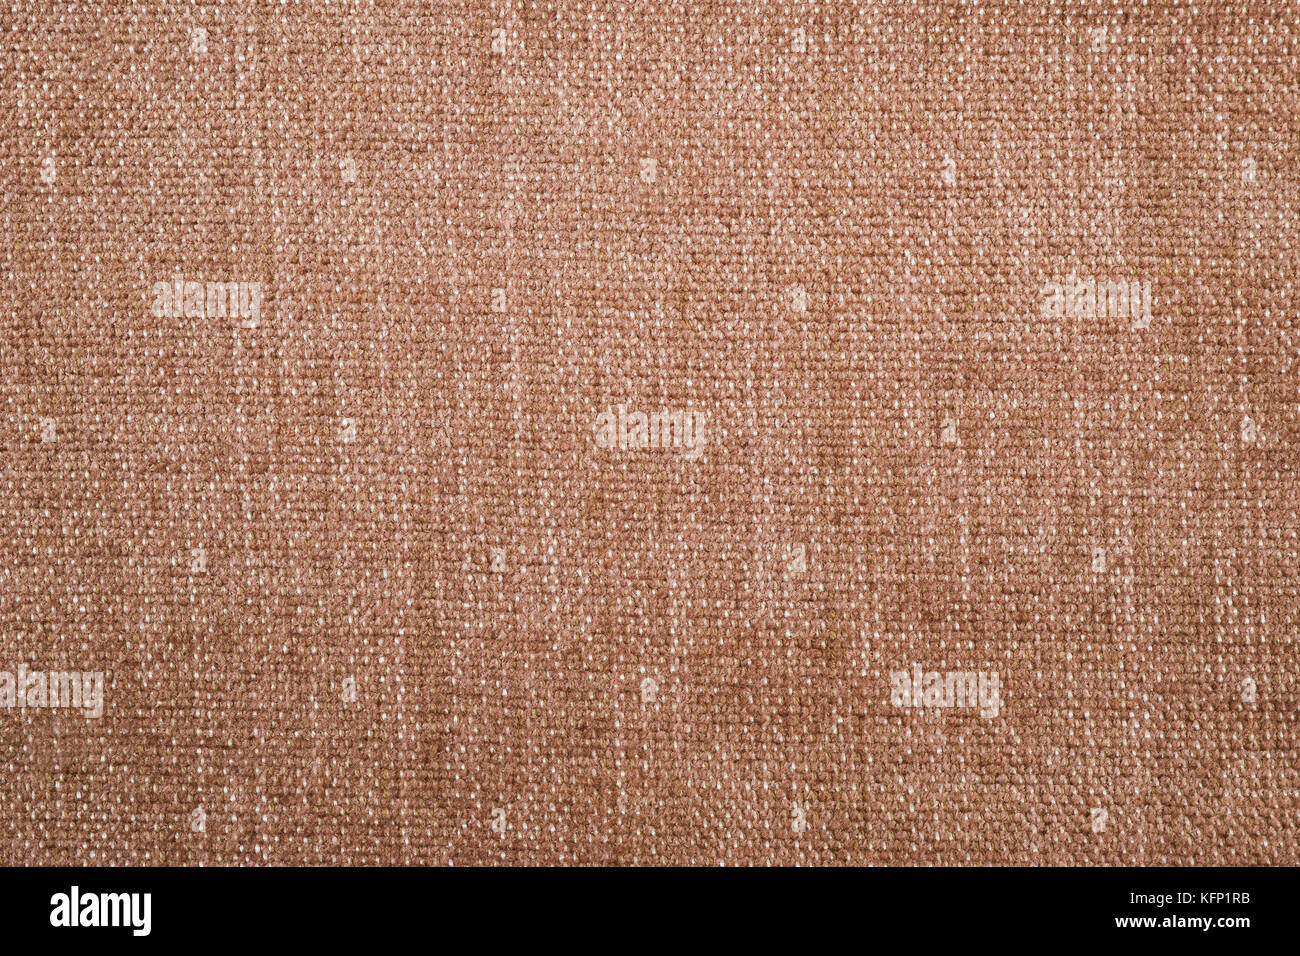 Background of the jute canvas - Stock Image